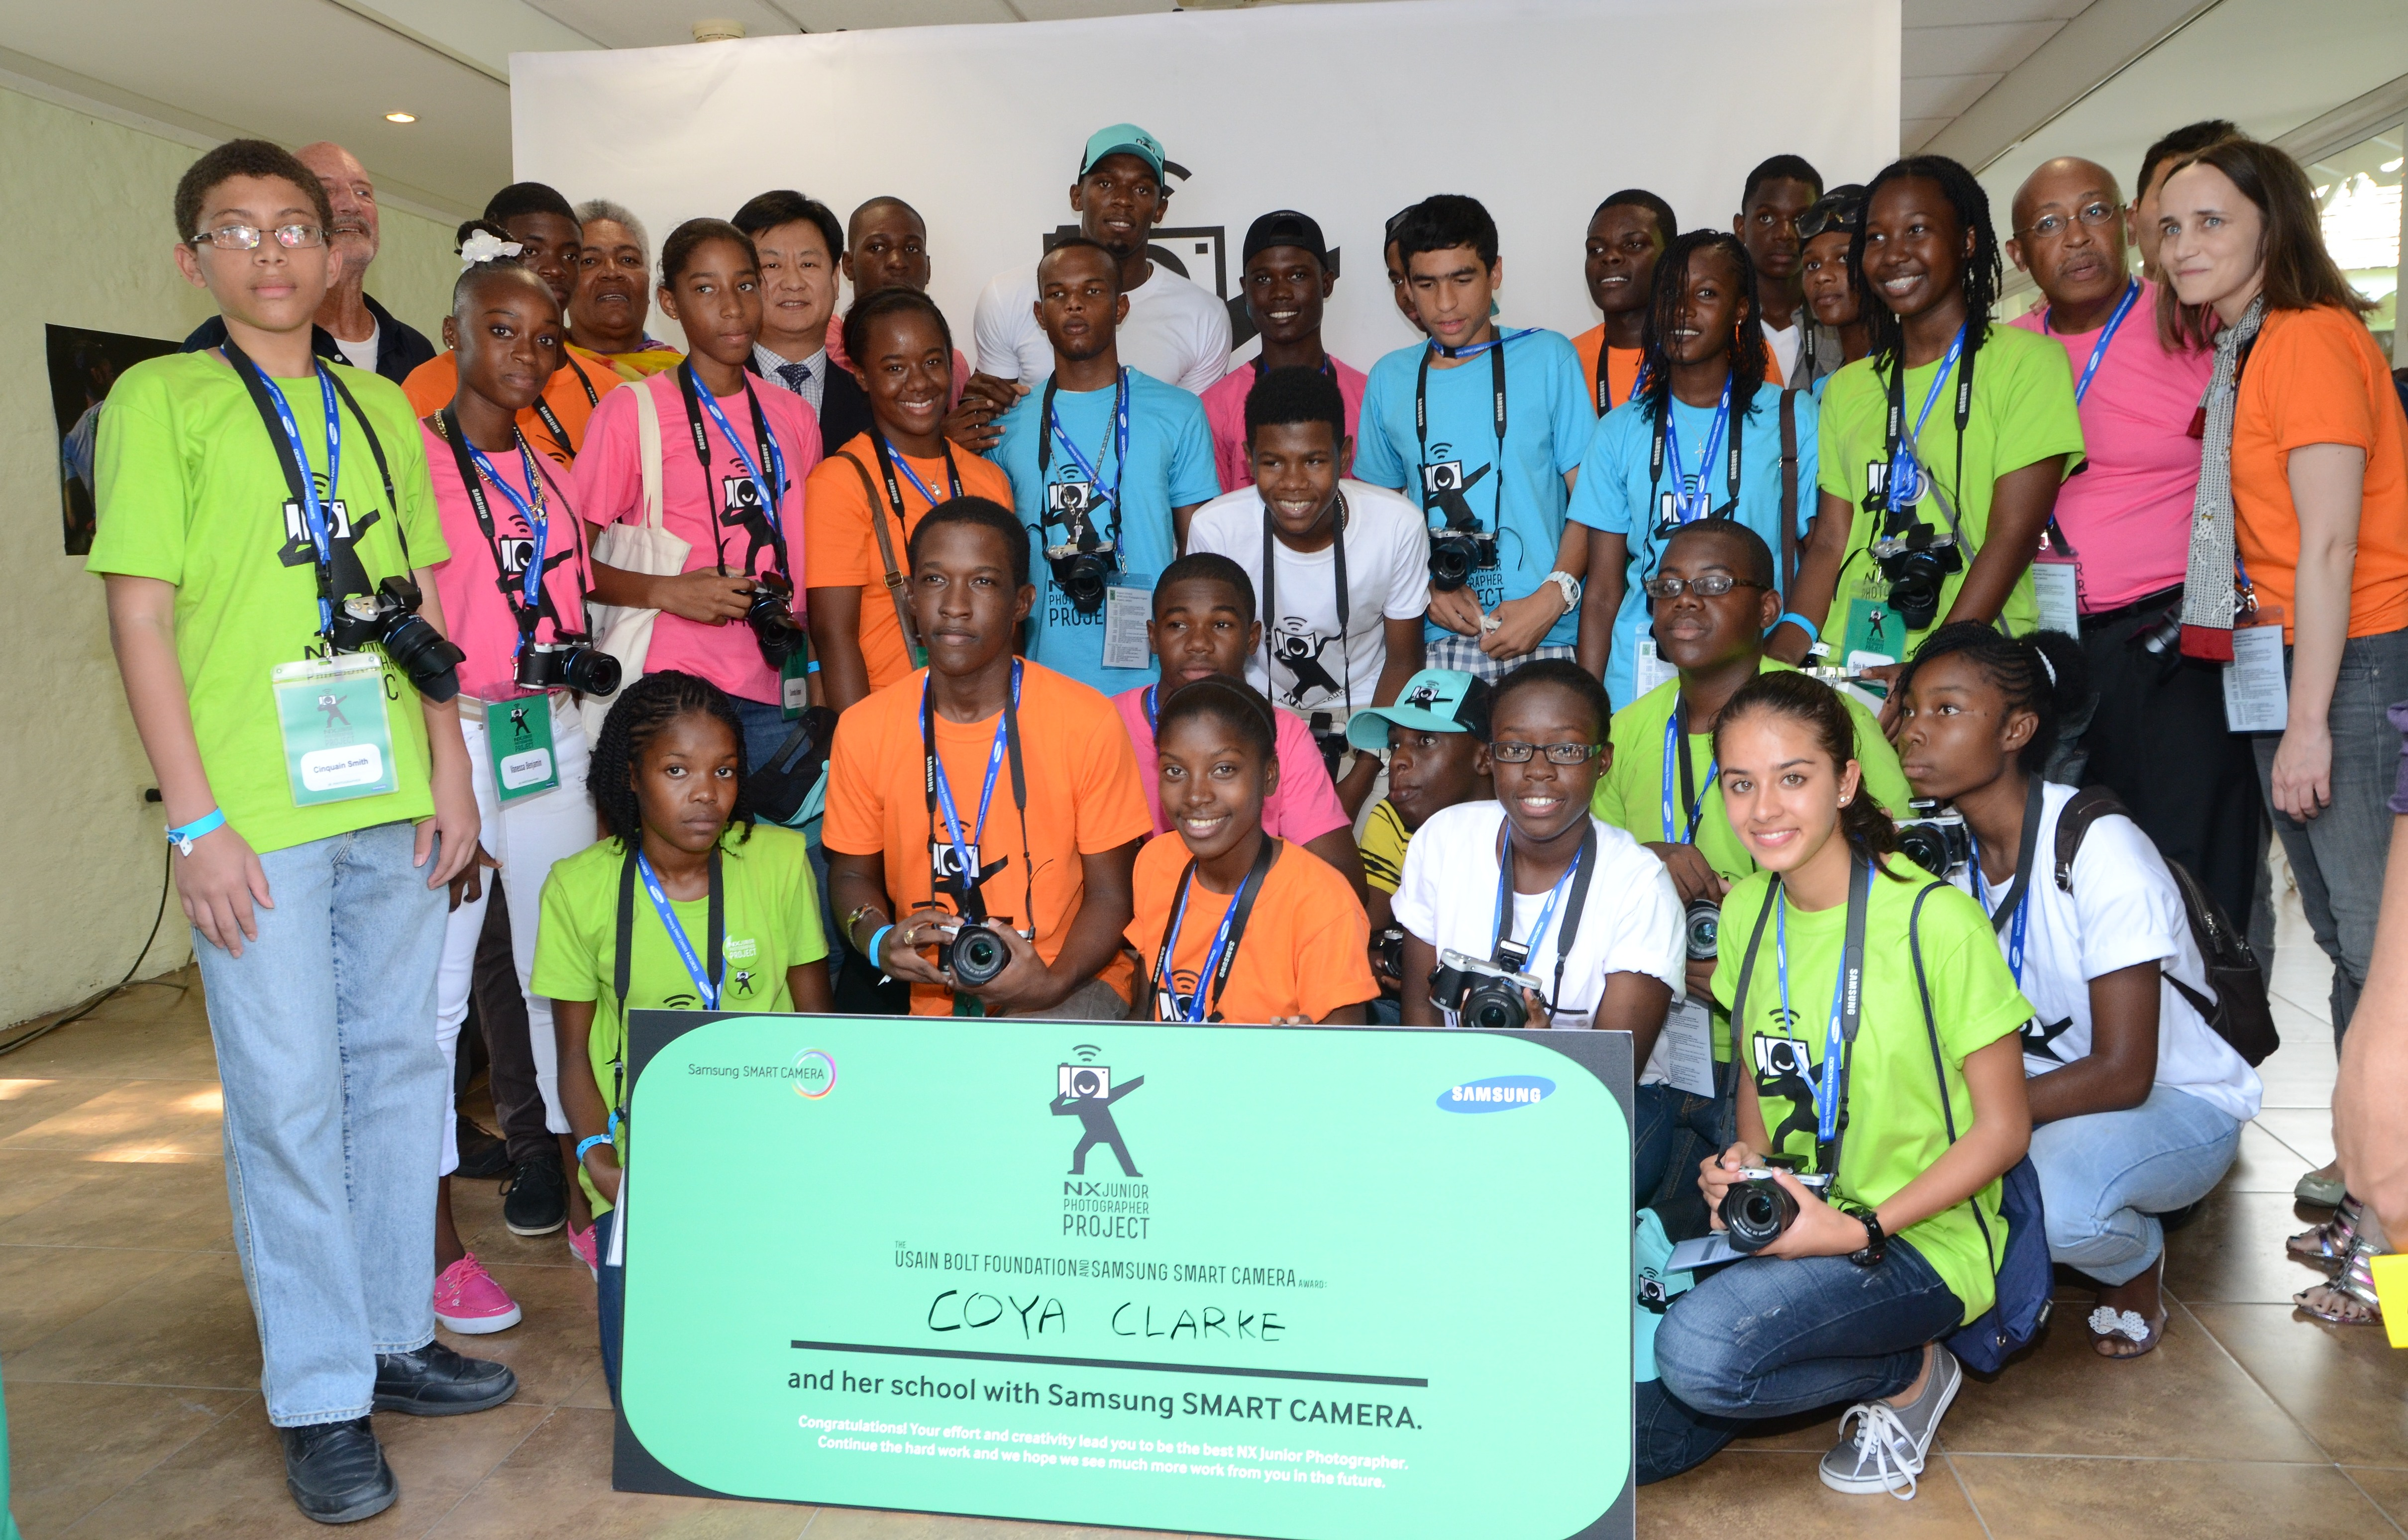 Photos from the Usain Bolt Foundation Samsung Camera Workshop, May 2013